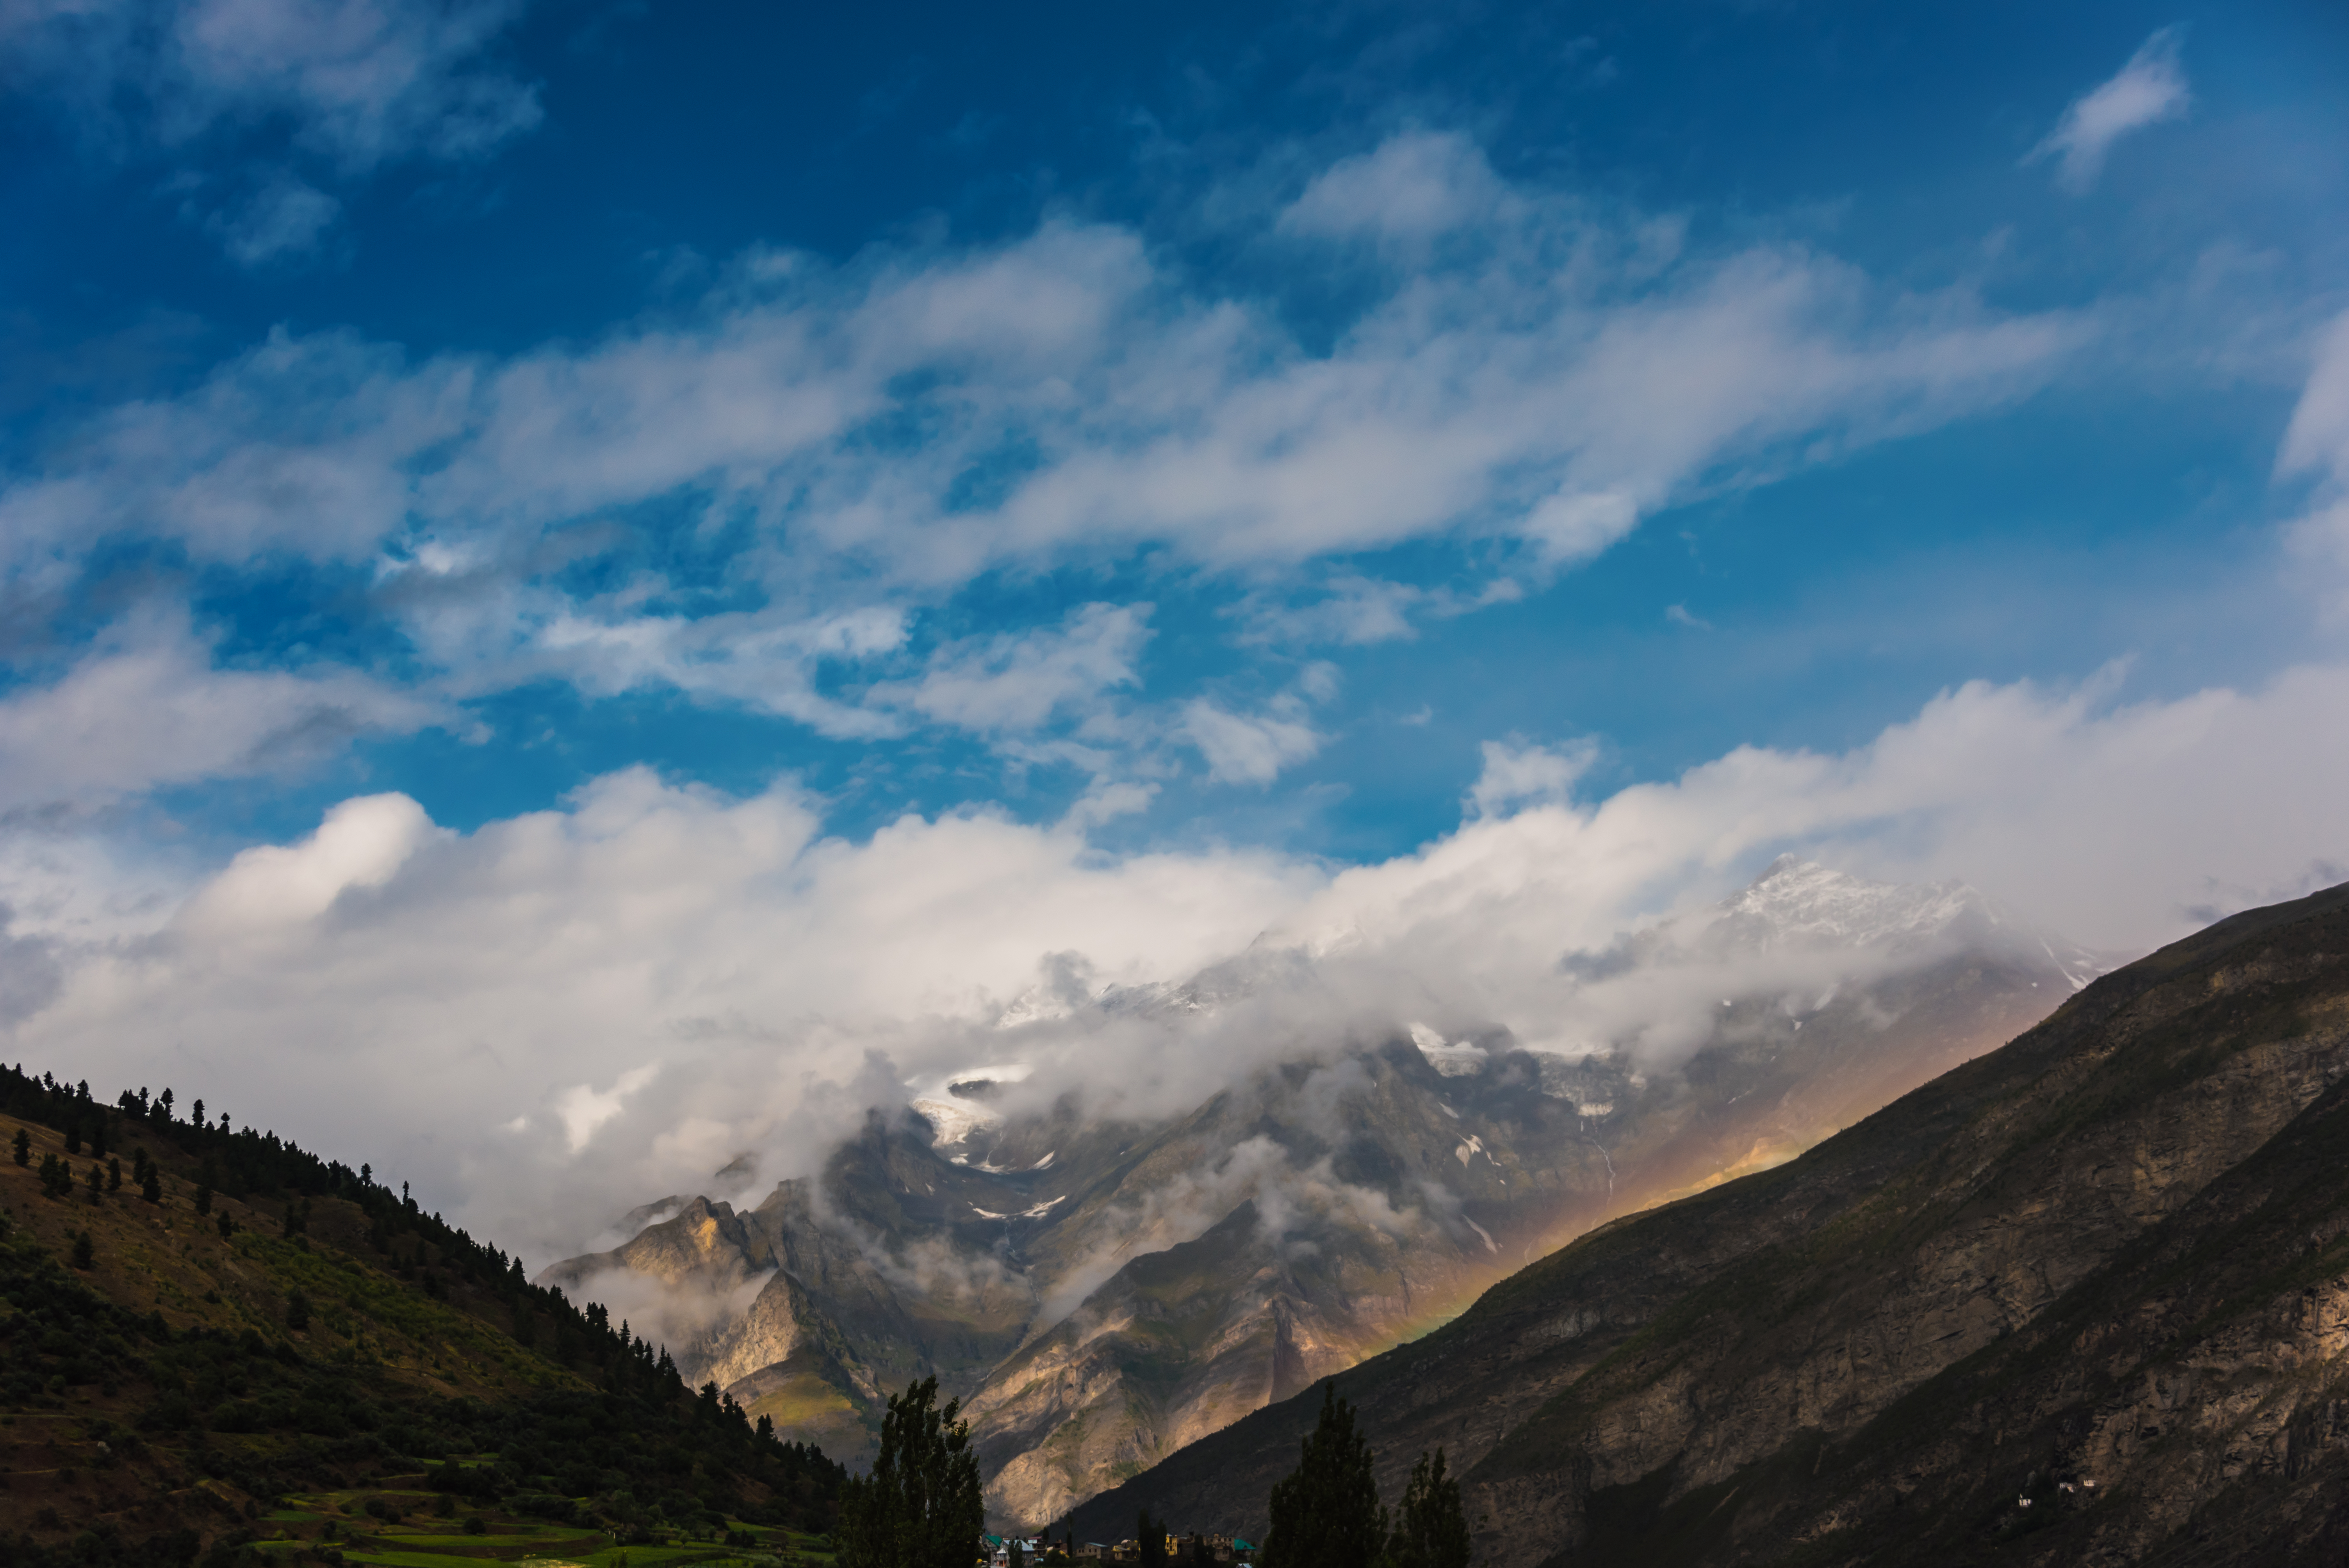 Himalayas The Divine Protector Of India